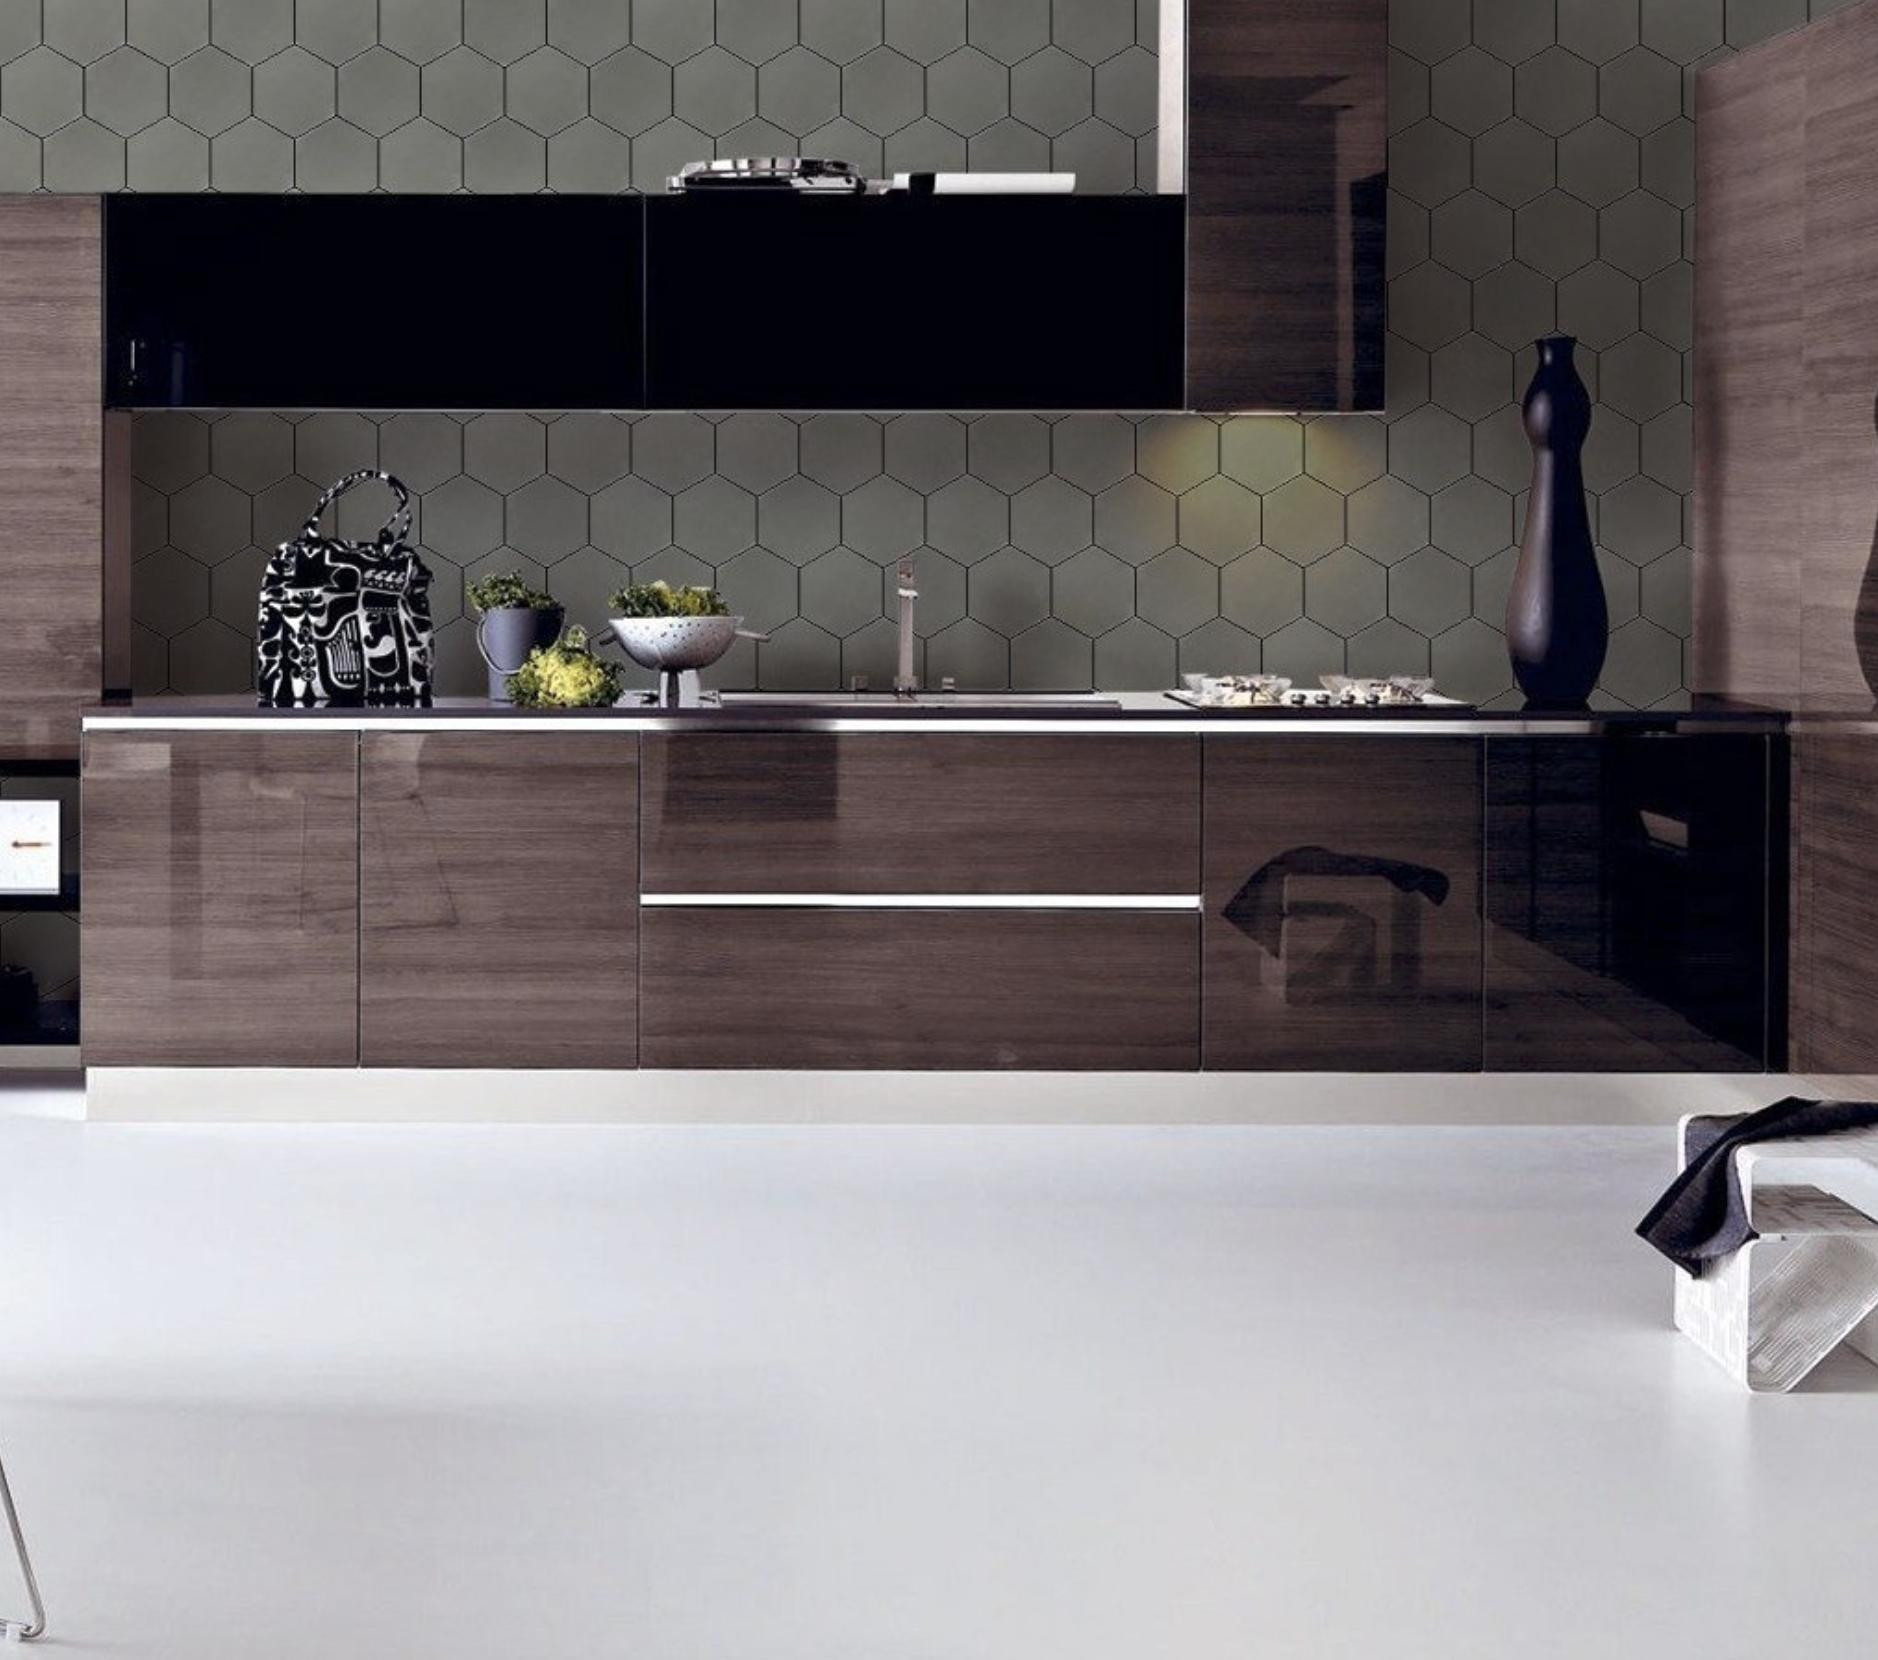 cementine-cucina-cle_tile_cement_solid_hex_metal_8x8_installation_kitchen_1